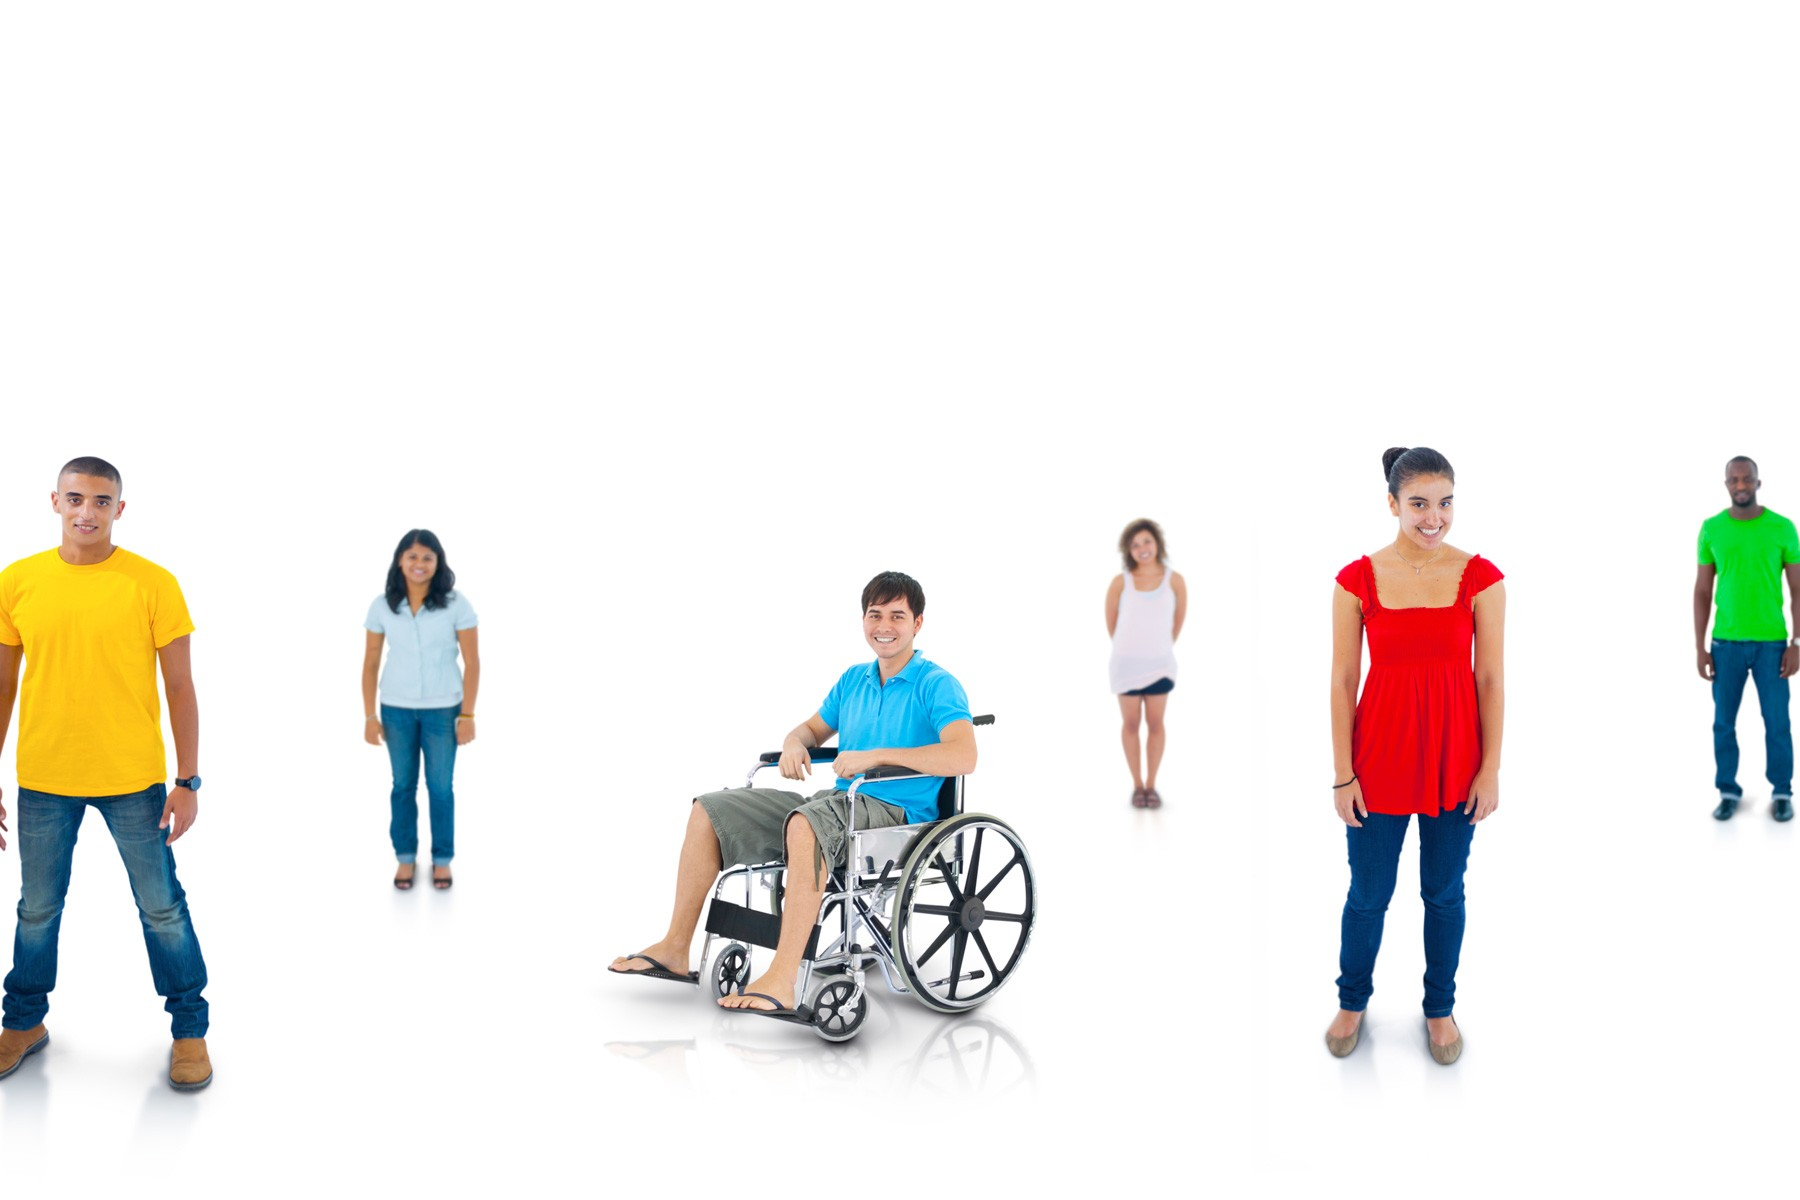 Can Vocational Rehabilitation ask about personal information?